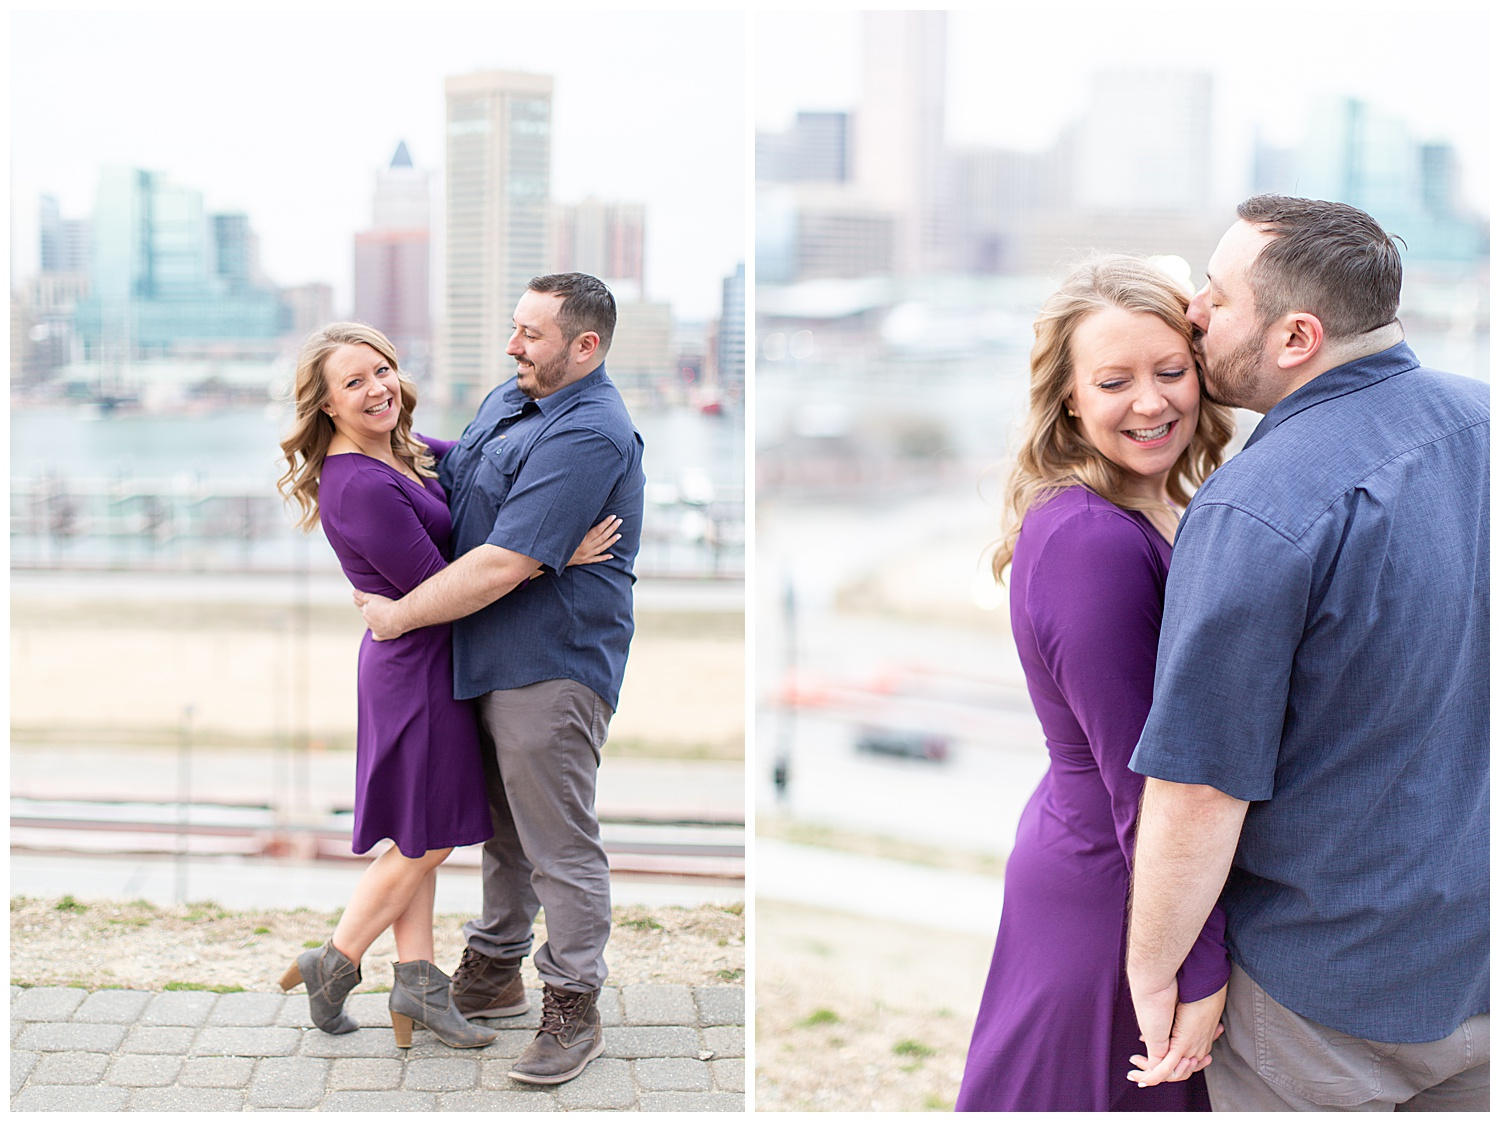 emily-belson-photography-baltimore-engagement-10.jpg